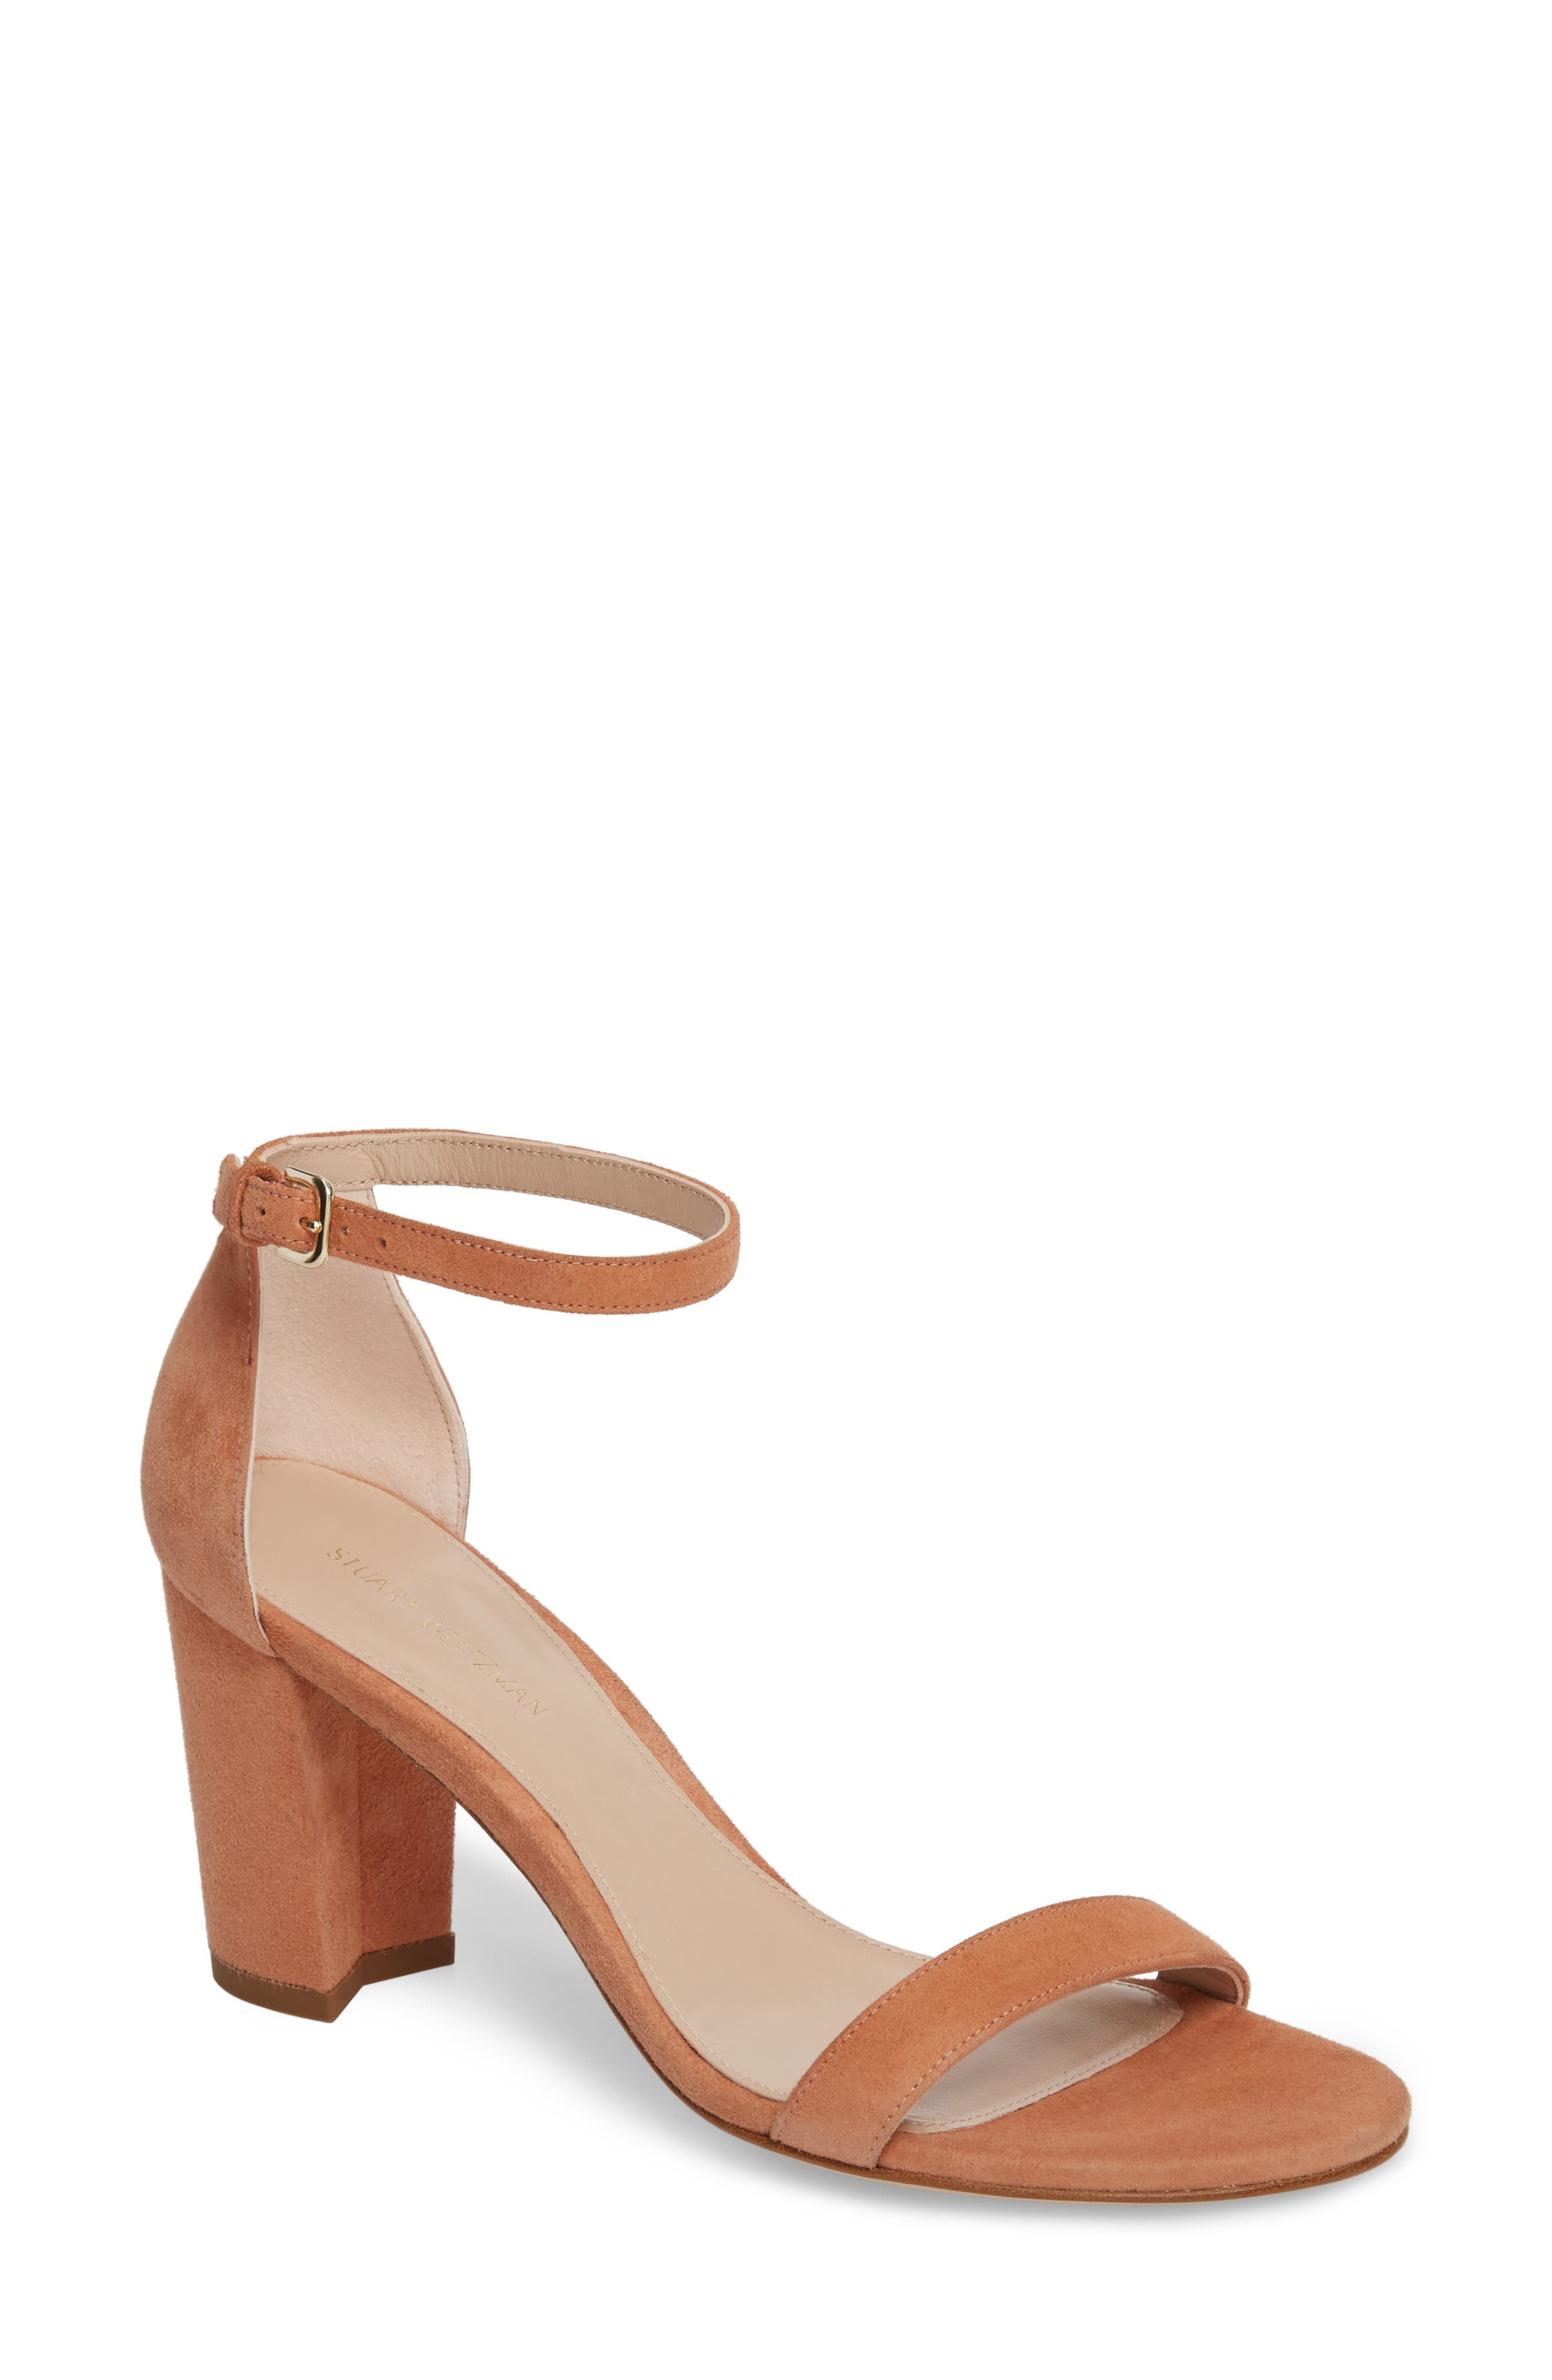 NearlyNude Ankle Strap Sandal,                             Main thumbnail 4, color,